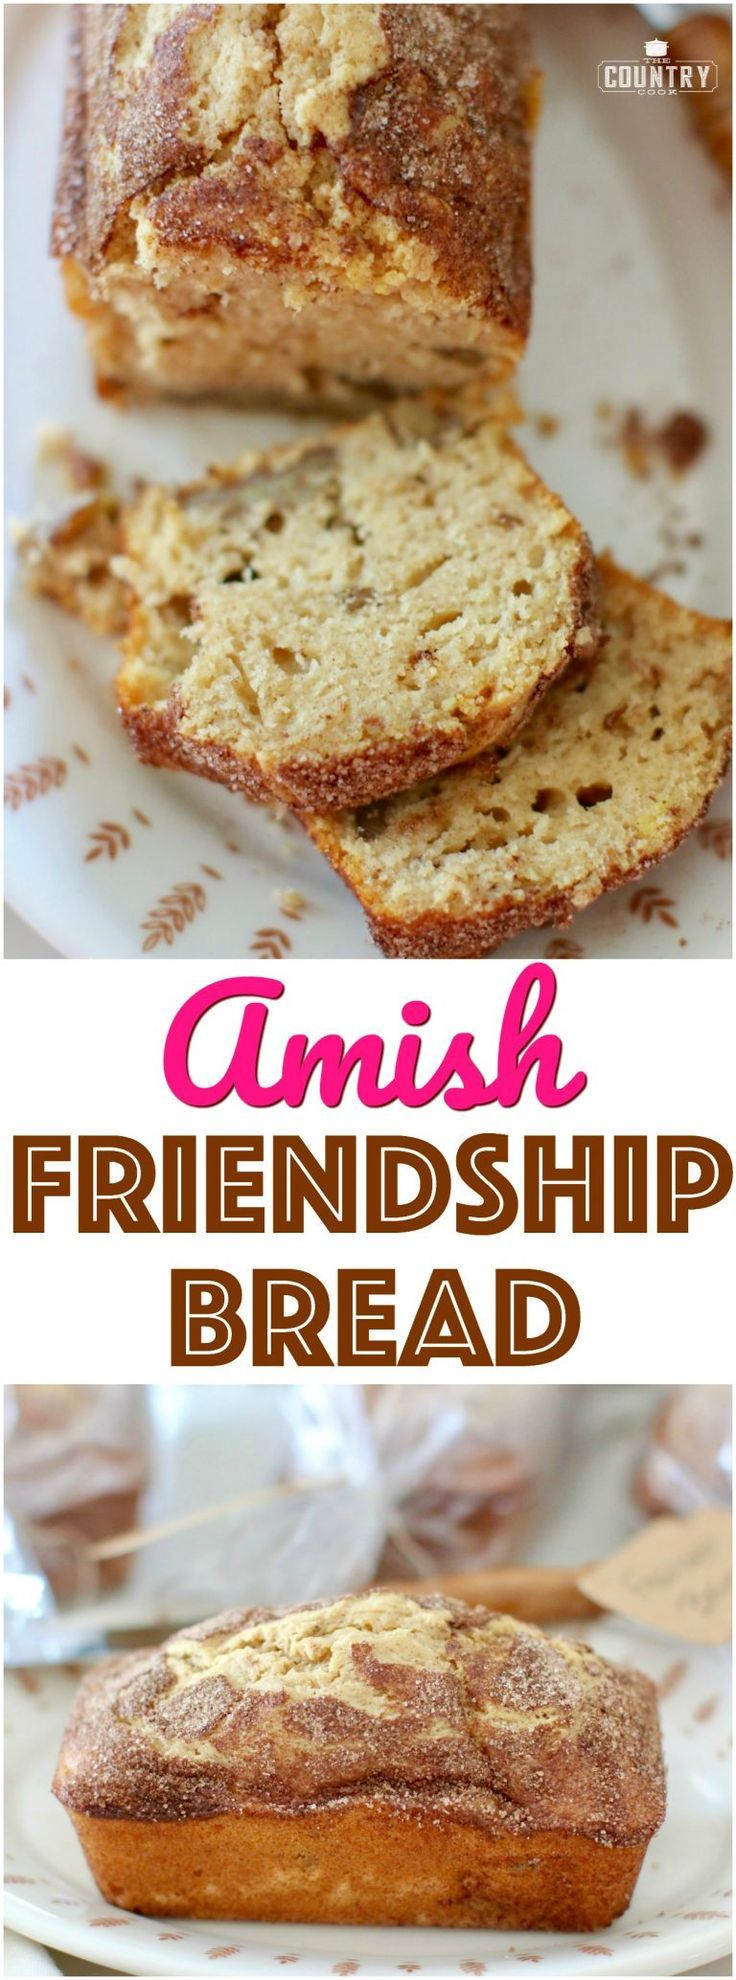 No-Starter Amish Friendship Bread recipe with Stevia In The Raw®️ from The Country Cook #ad #Amish #bread